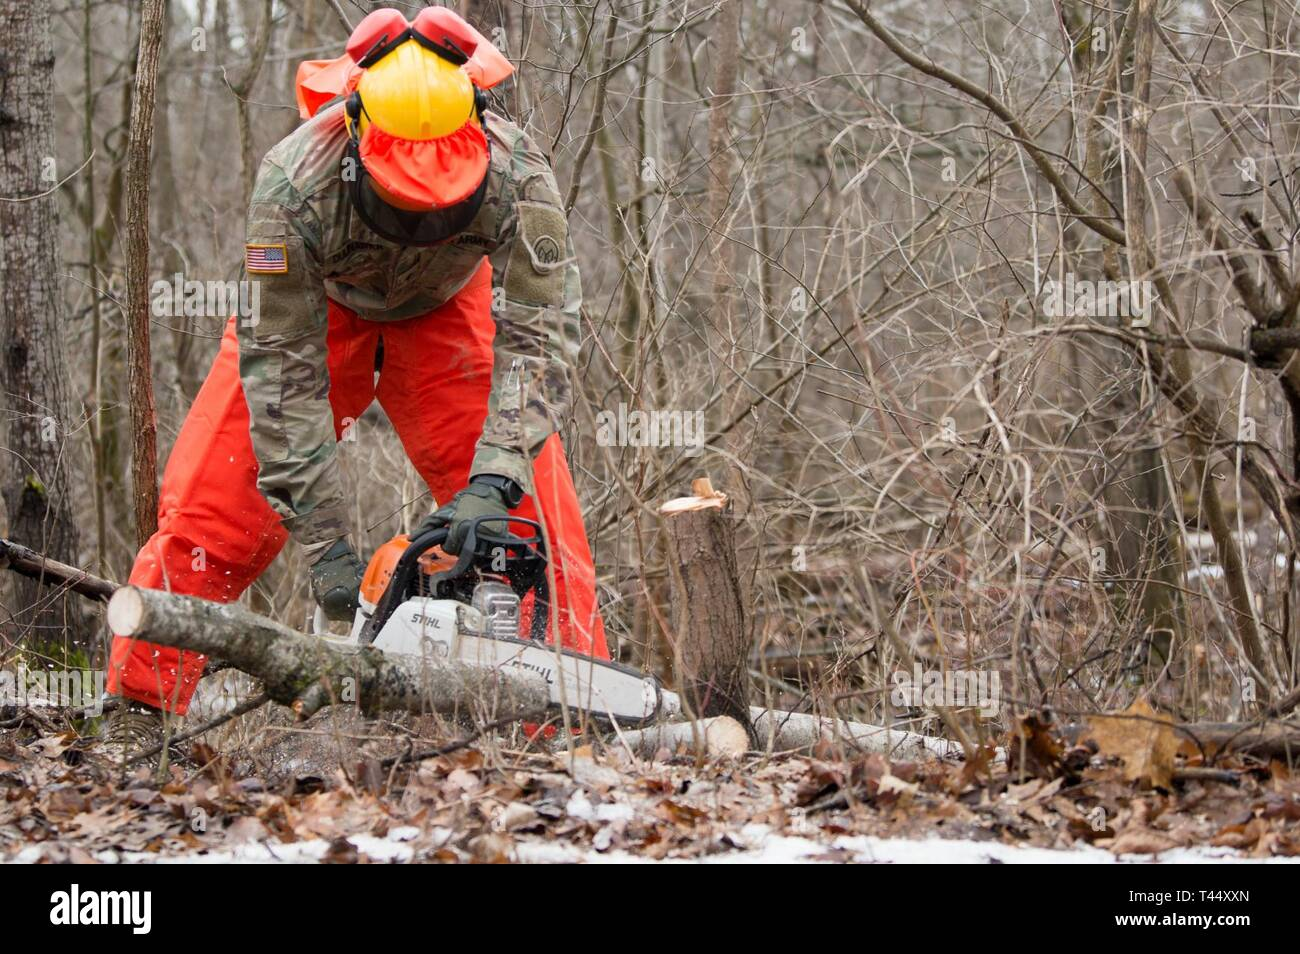 Spc. Kevin Dulinawka assigned to Echo Company, 427th Brigade Support Battalion, 152nd Brigade Engineering Battalion, 27th Infantry Brigade Combat Team, New York Army National Guard, Buffalo, uses a chainsaw at Youngstown Local Training Area, Feb. 24, 2019. The training team was composed of New York Army National Guard and New York Guard Soldiers. They trained on how to use the equipment properly and safely. These Soldiers are just a few of more than 250 Soldiers and Airmen that are deployed to Western New York for debris clearing missions in support of Operation February Winter Storm. - Stock Image